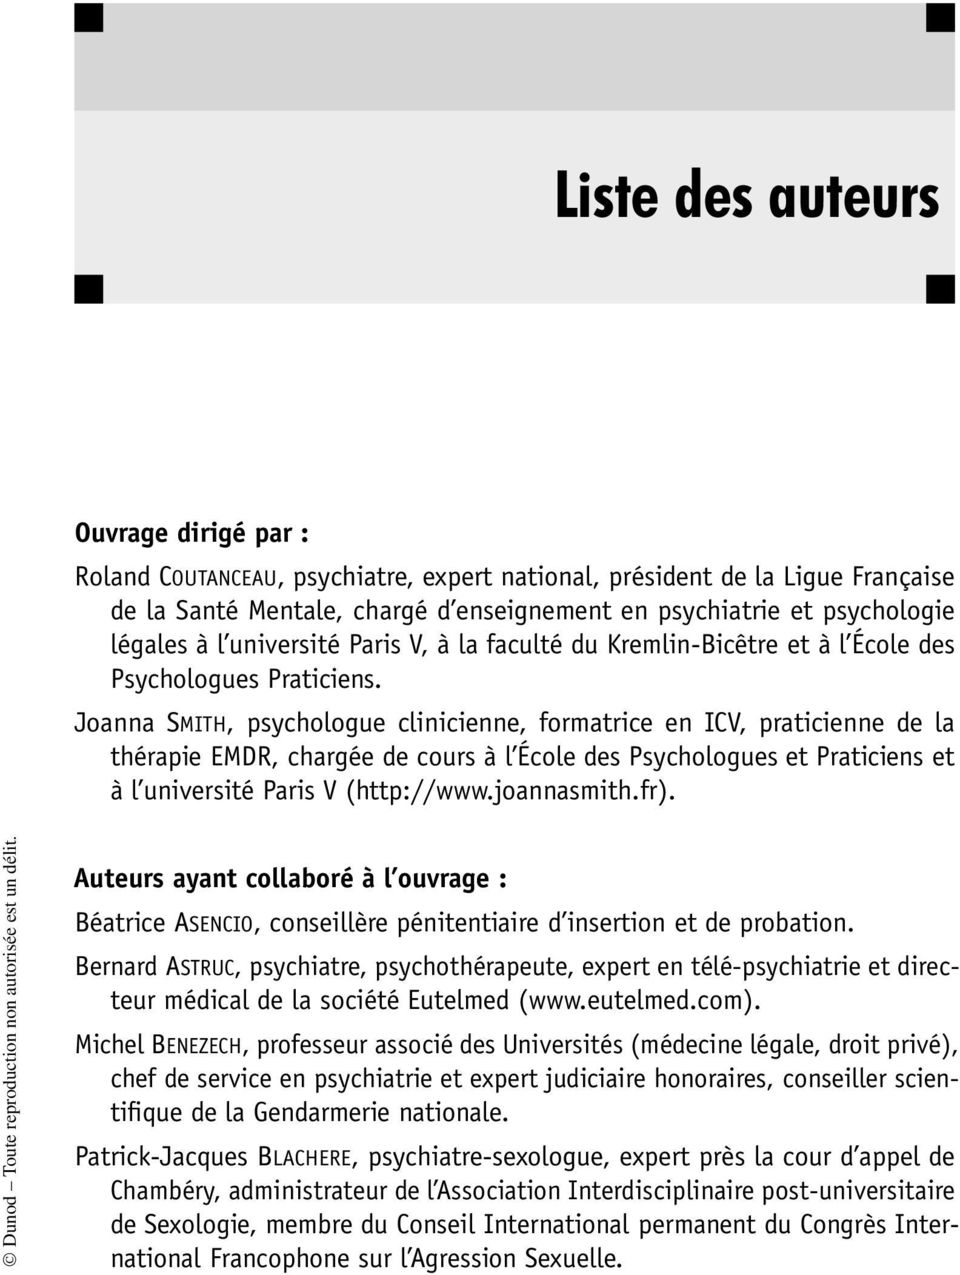 Joanna SMITH, psychologue clinicienne, formatrice en ICV, praticienne de la thérapie EMDR, chargée de cours à l École des Psychologues et Praticiens et à l université Paris V (http://www.joannasmith.